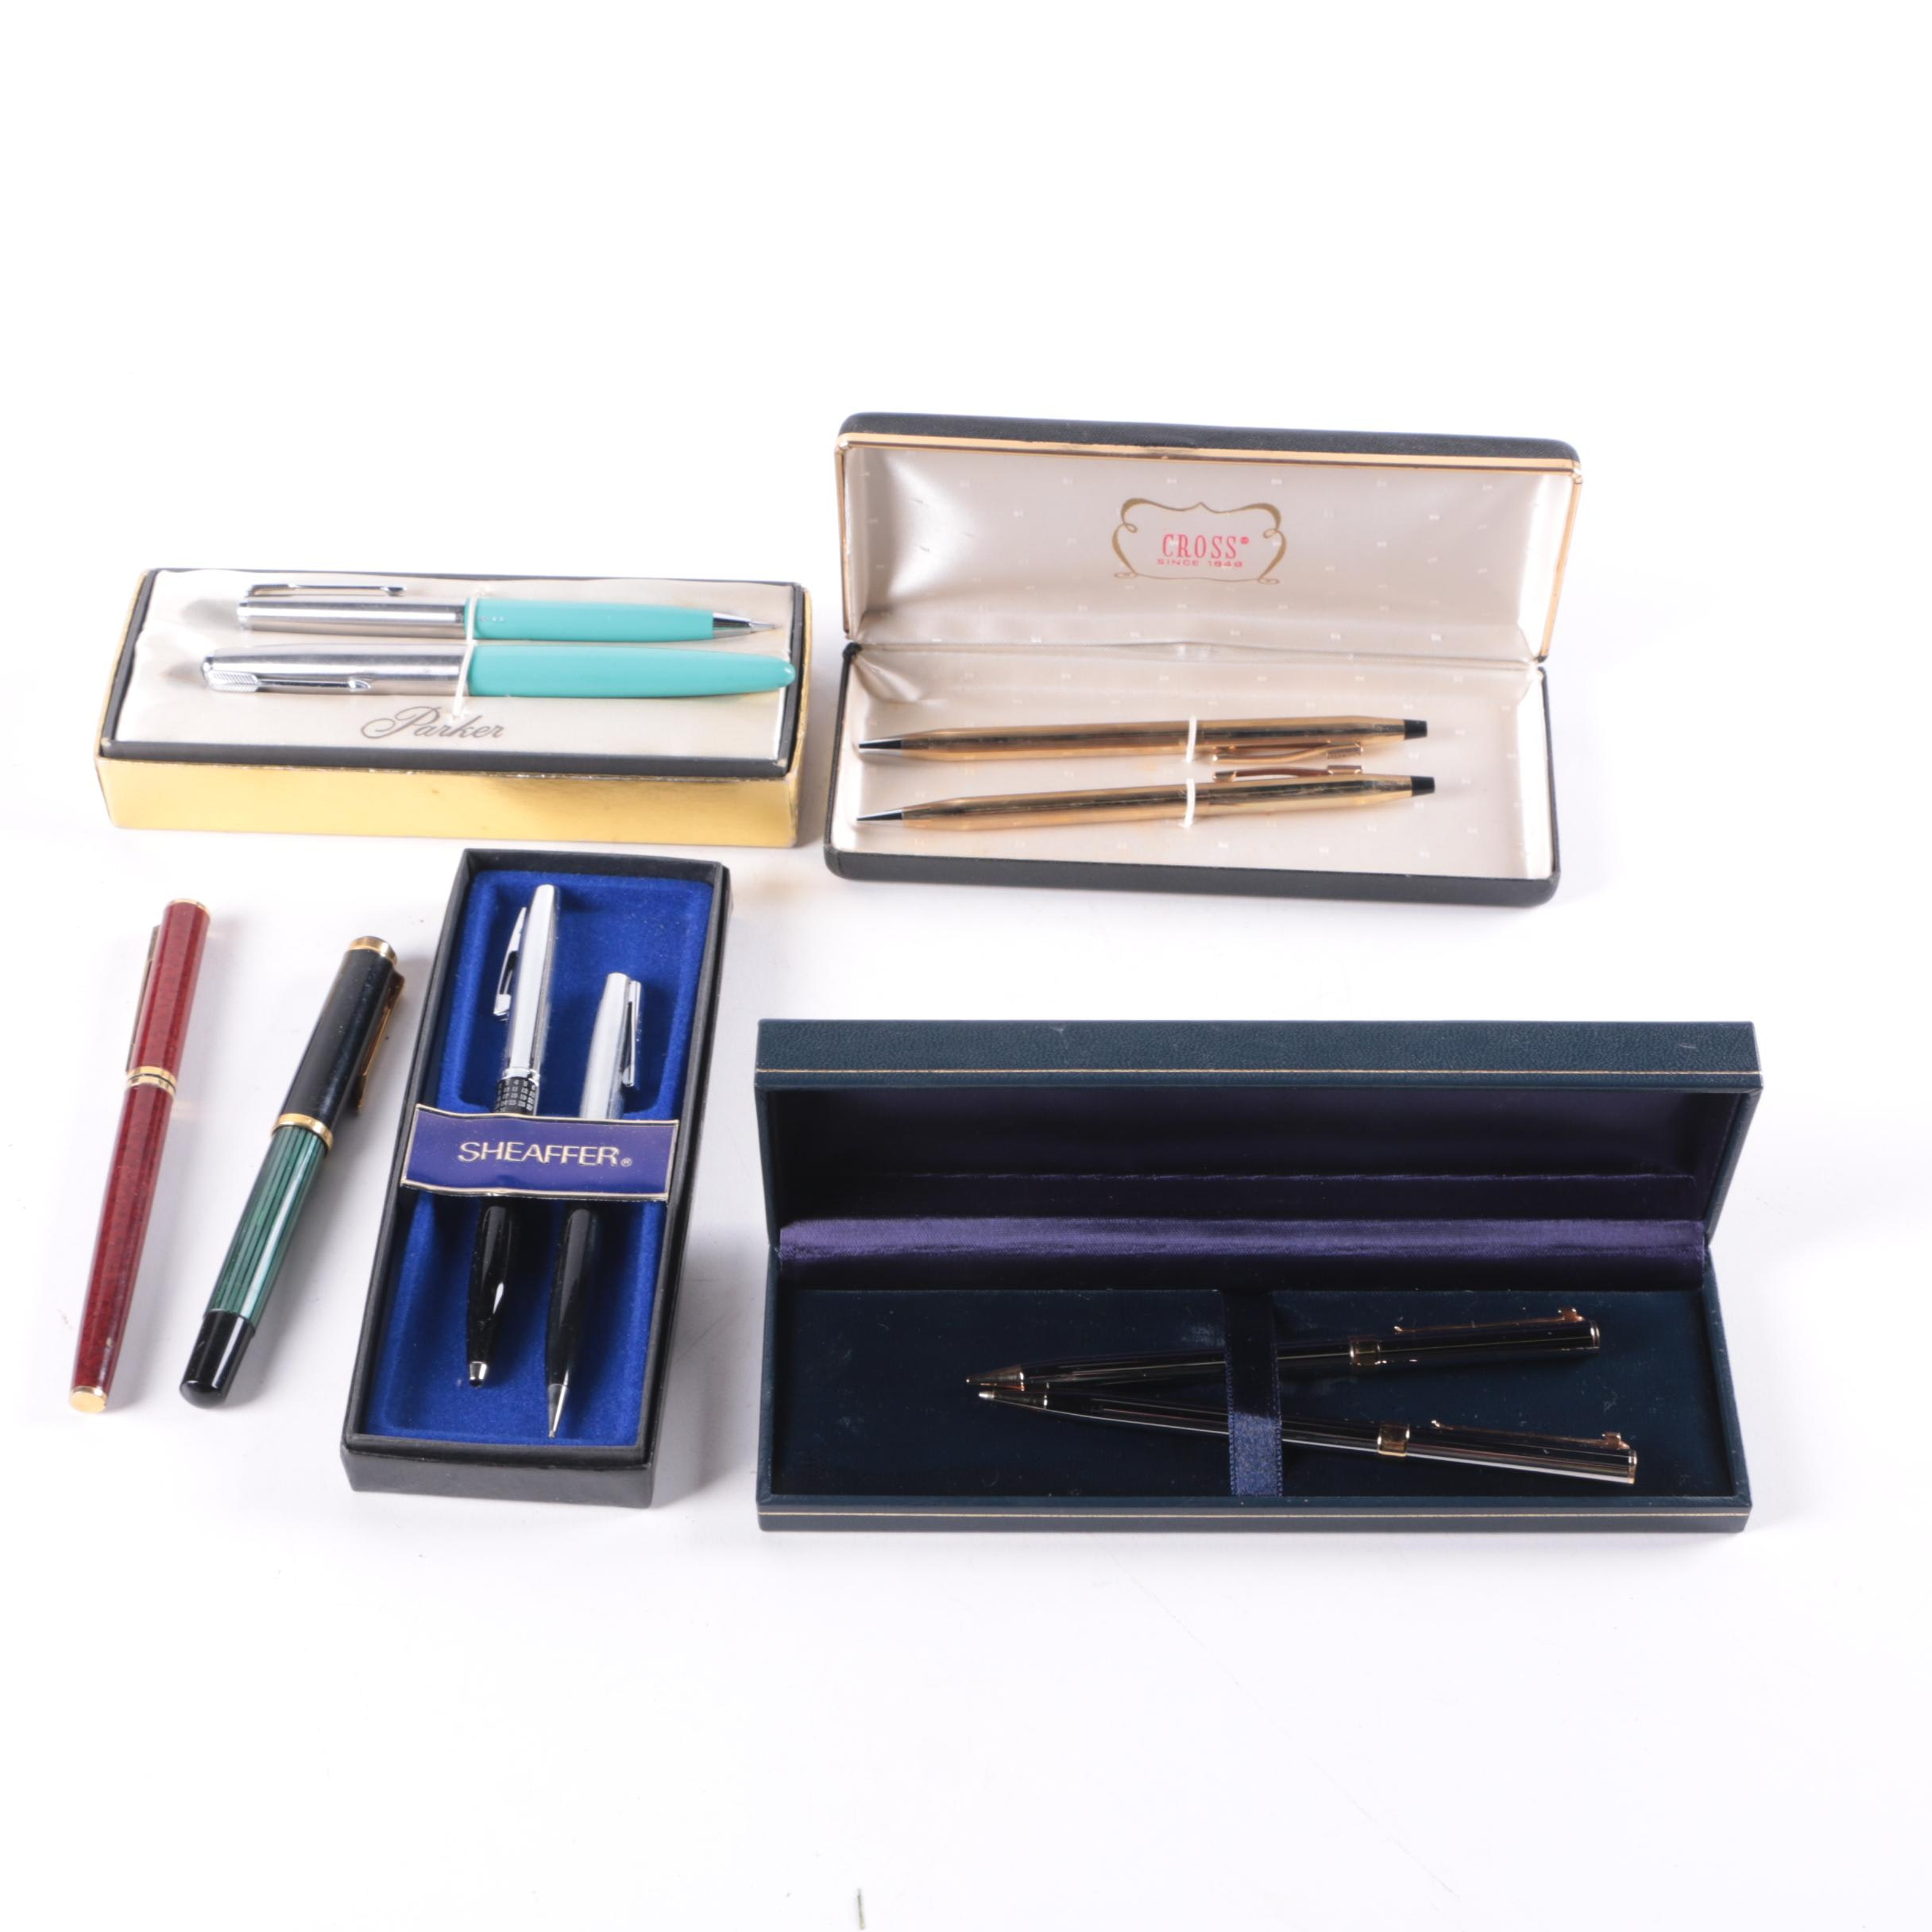 Pens Featuring Tiffany & Co. and Sheaffer